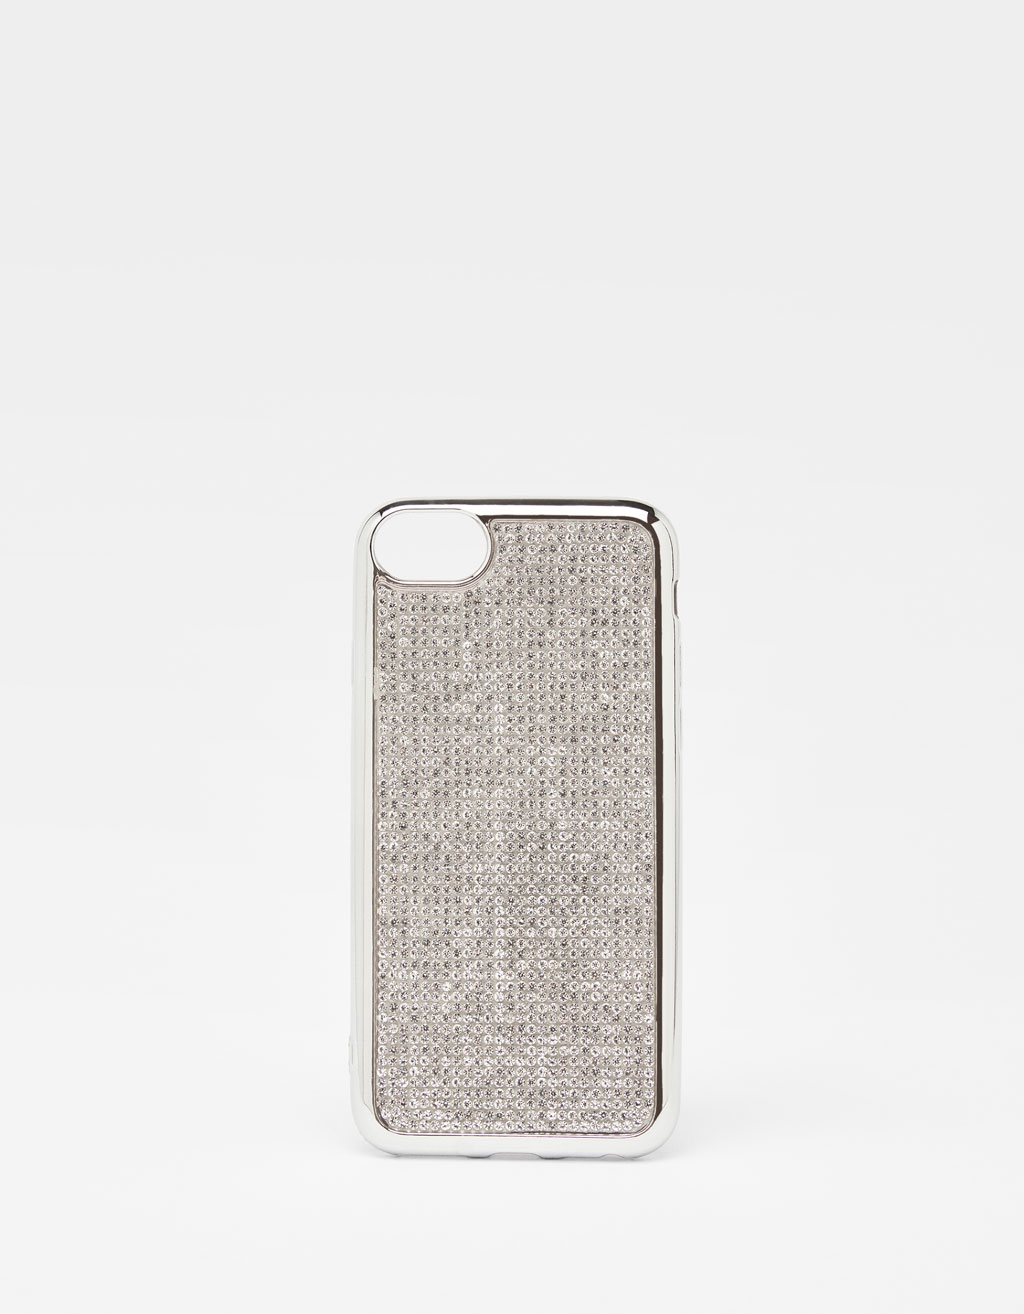 iPhone 6 / 6S / 7 / 8 case with rhinestones